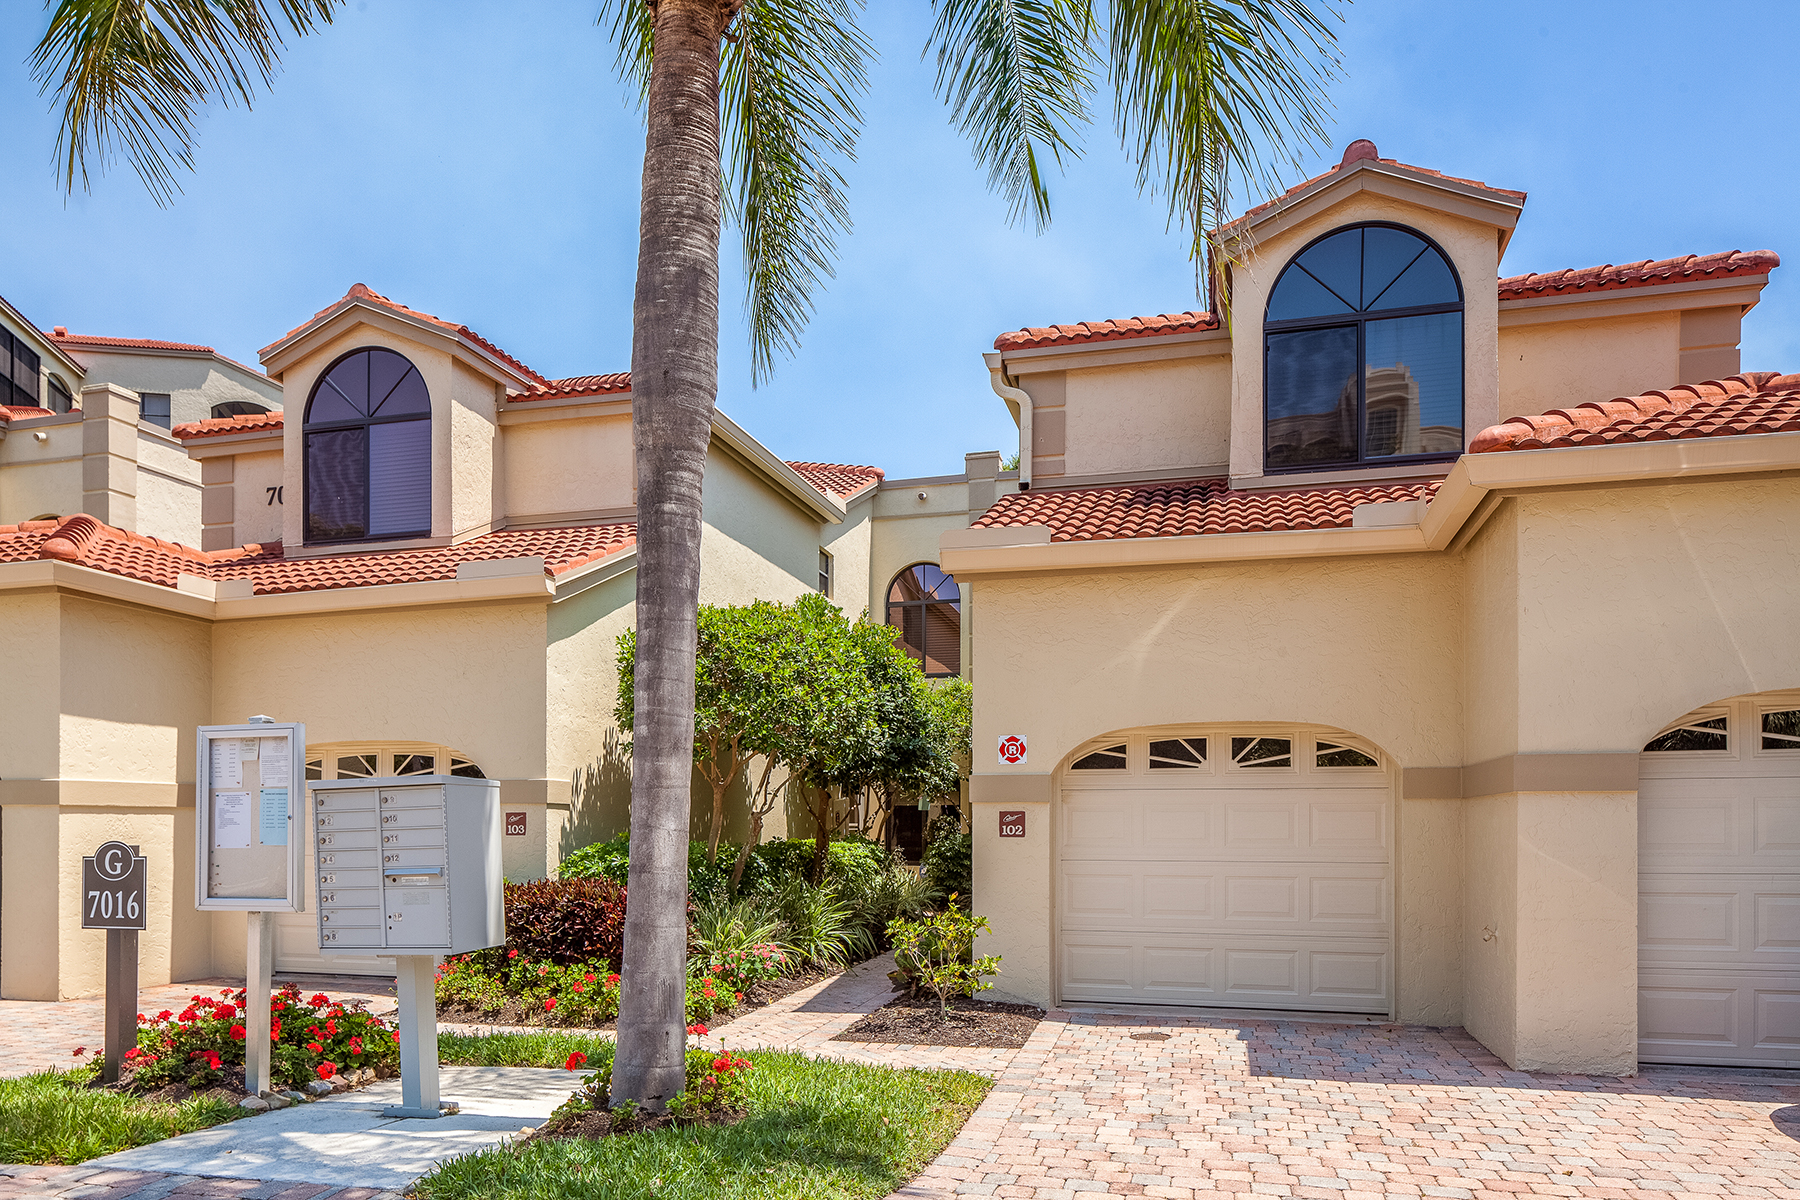 Condominium for Sale at PELICAN BAY - CALAIS 7016 Pelican Bay Blvd G-102 Naples, Florida, 34108 United States